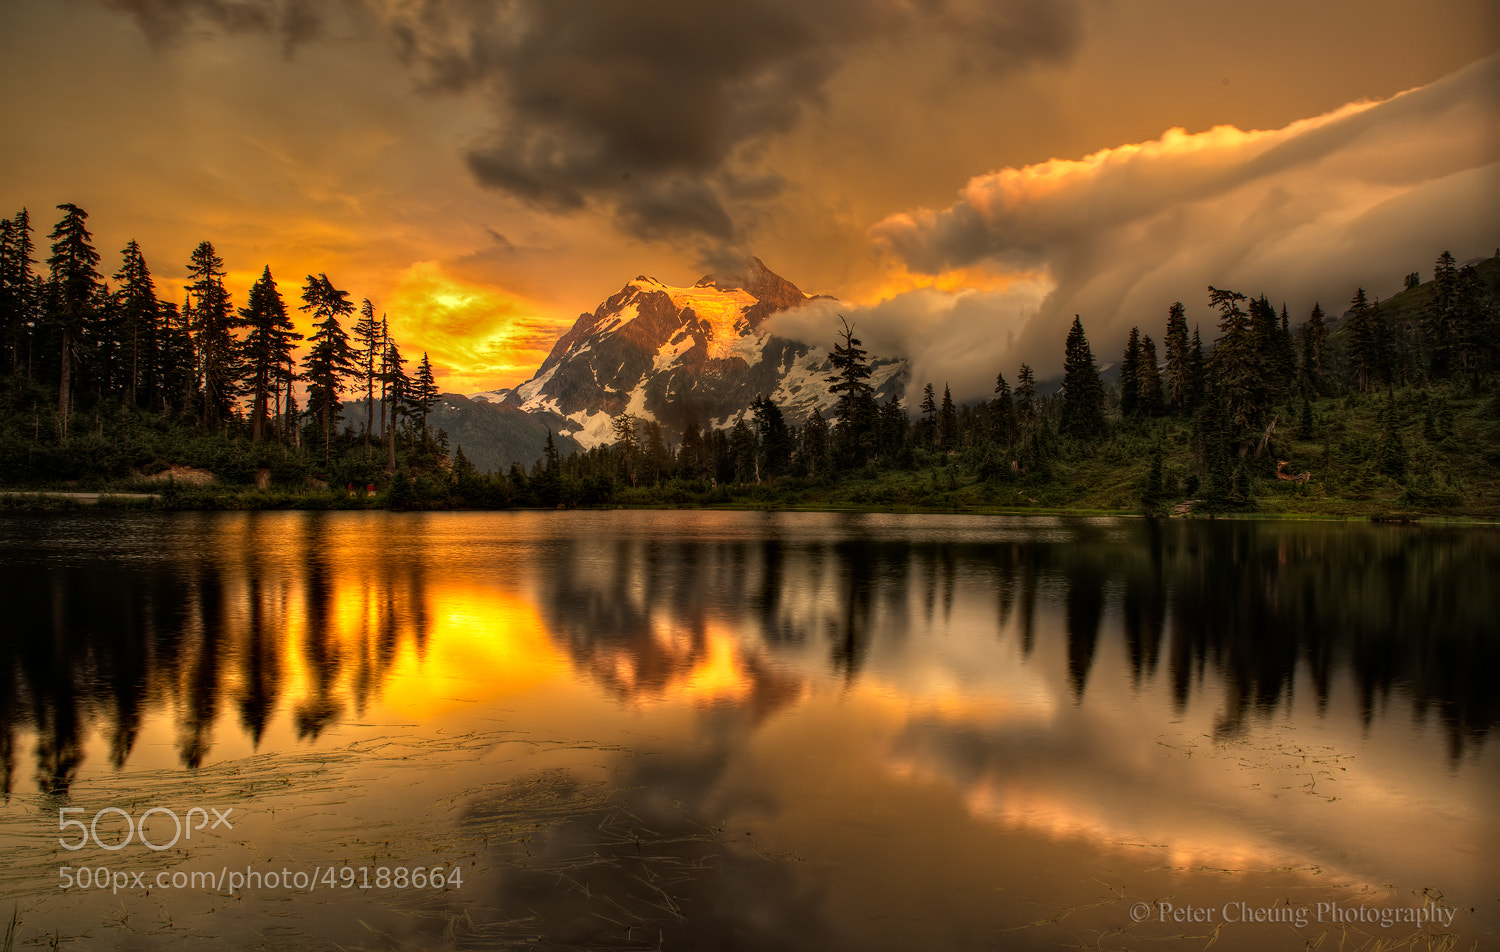 Photograph Golden Sunset by Peter Cheung on 500px